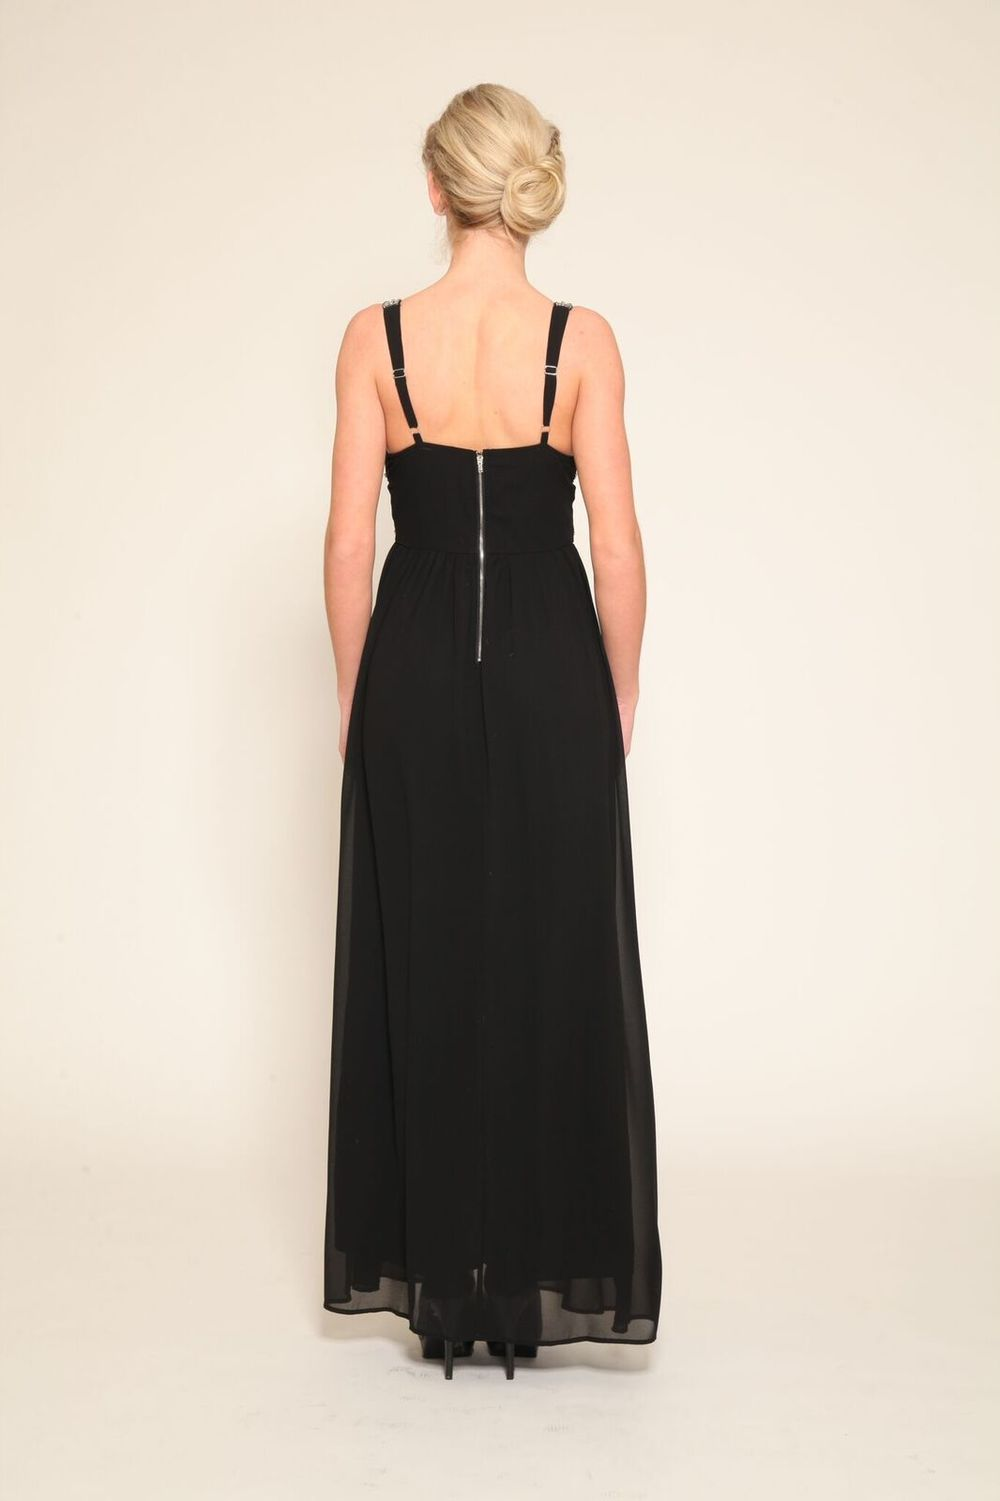 Pleated Skirt Black Gown $325